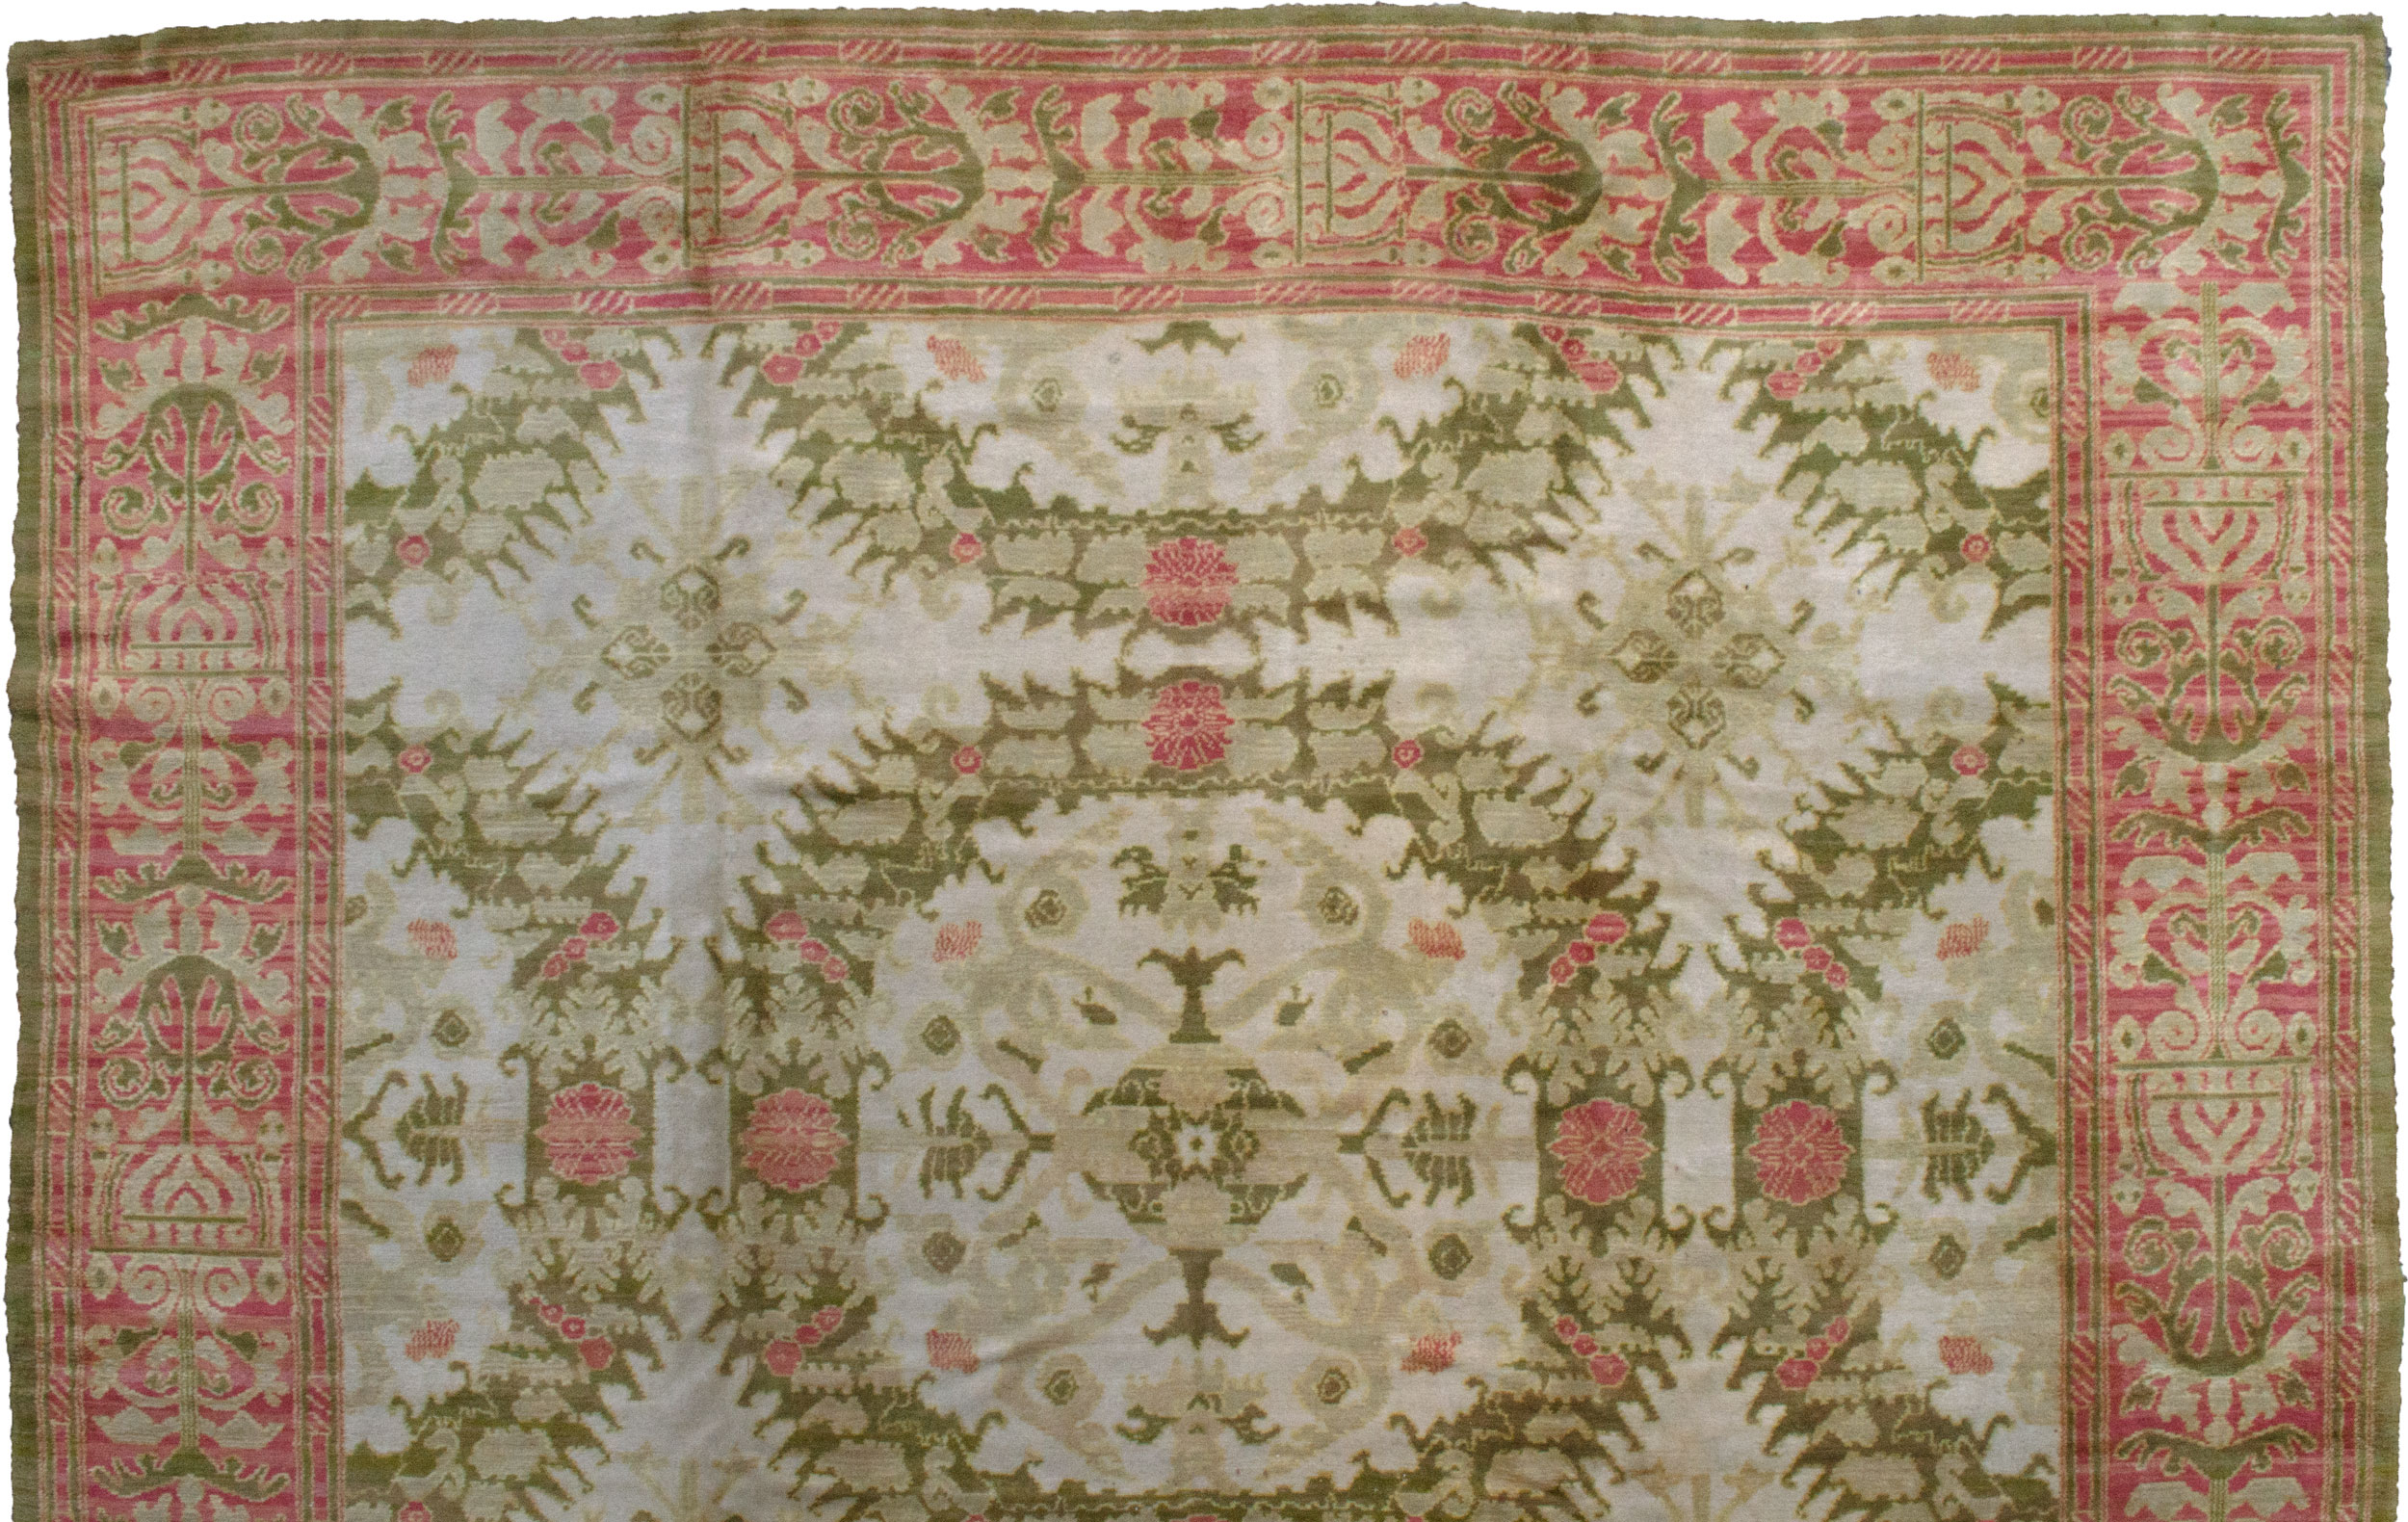 Antique Spanish Carpet 716x307cm